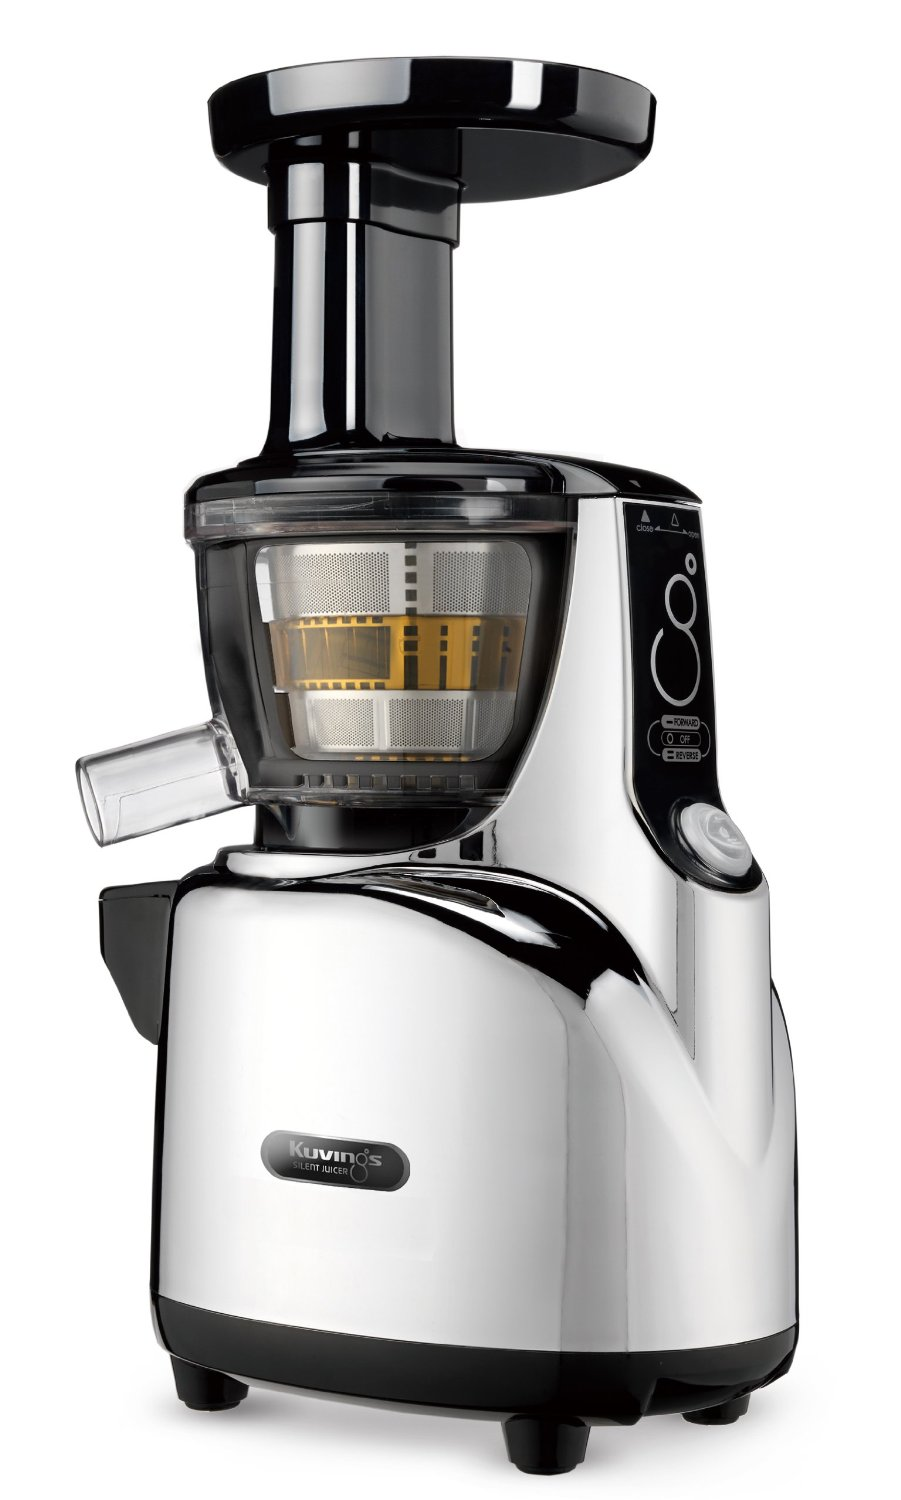 The Best Slow Juicer 2015 : 5 Best Kuvings Juicer Reviews UPDATED: 2018 The Home Savant